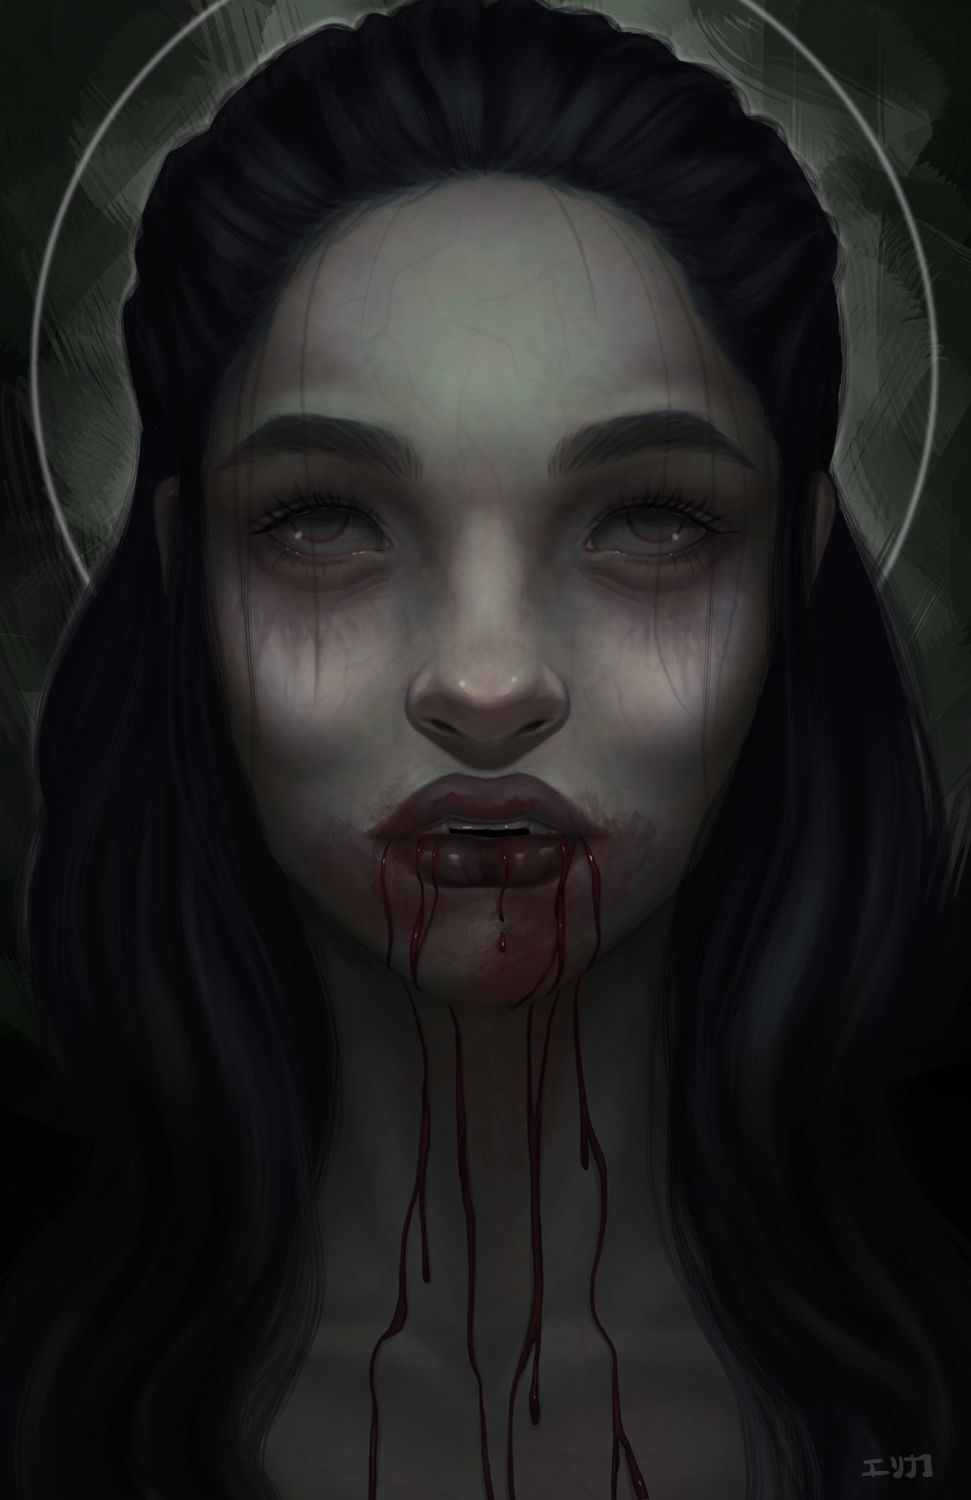 Vampire Artwork by Erica Willey